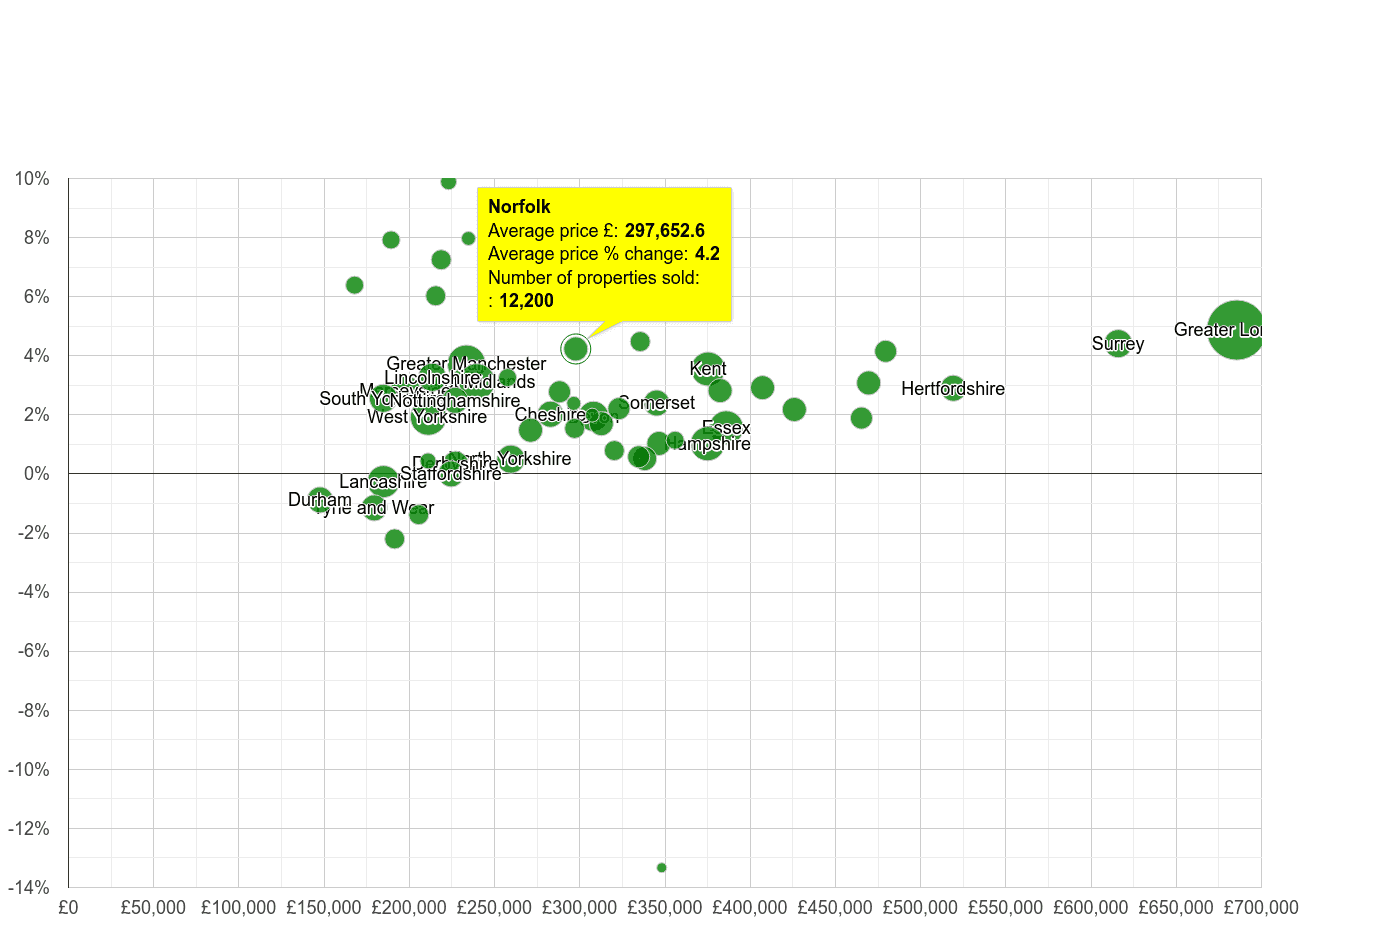 Norfolk house prices compared to other counties